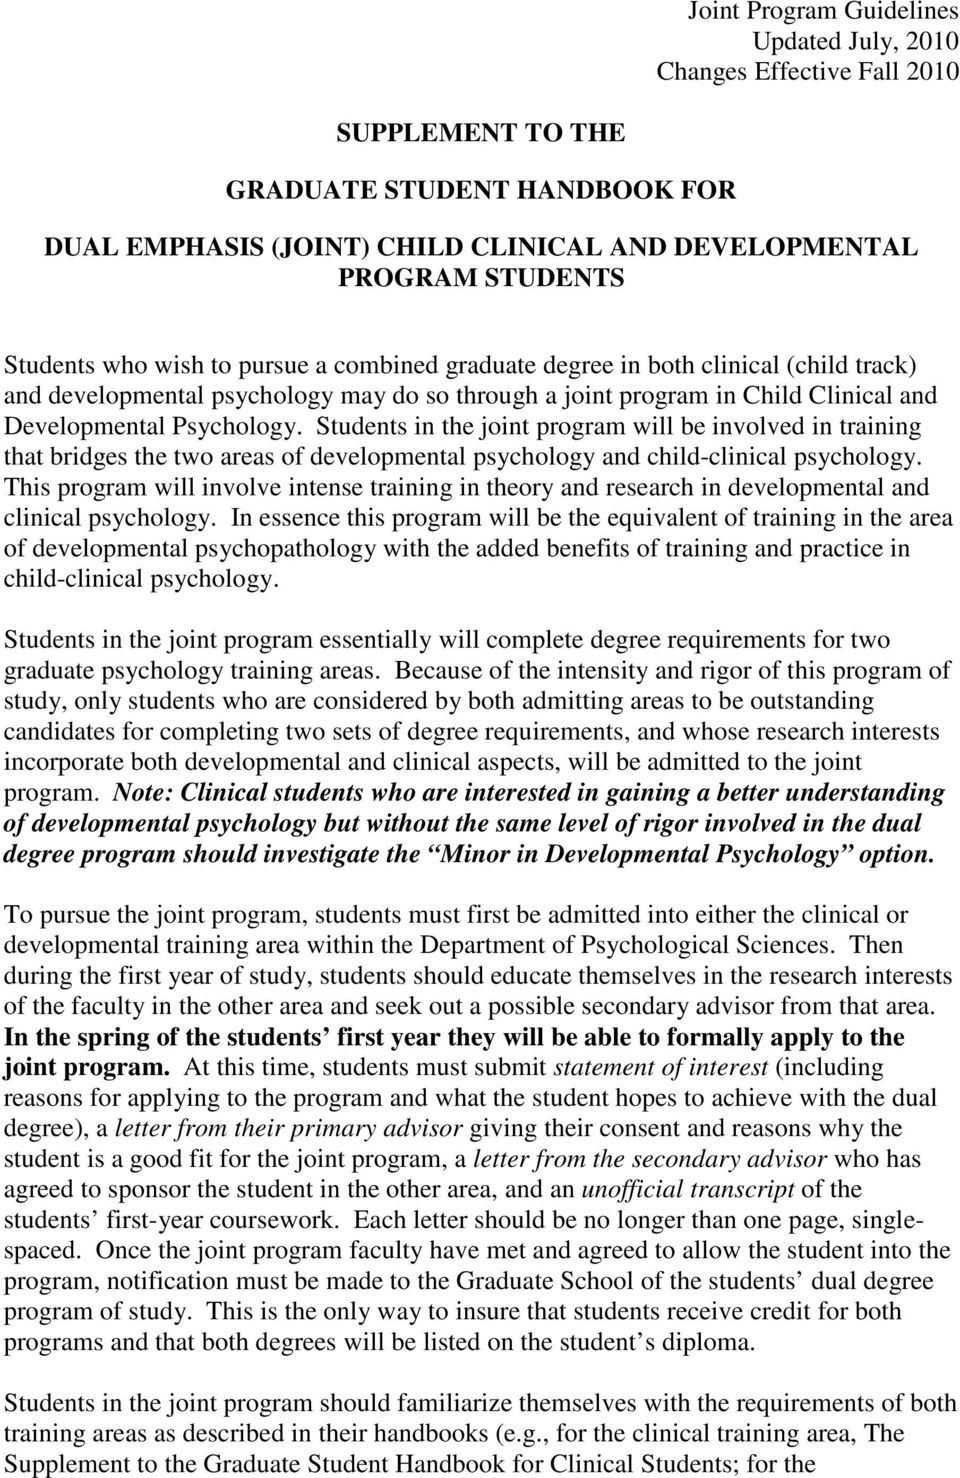 Students in the joint program will be involved in training that bridges the two areas of developmental psychology and child-clinical psychology.